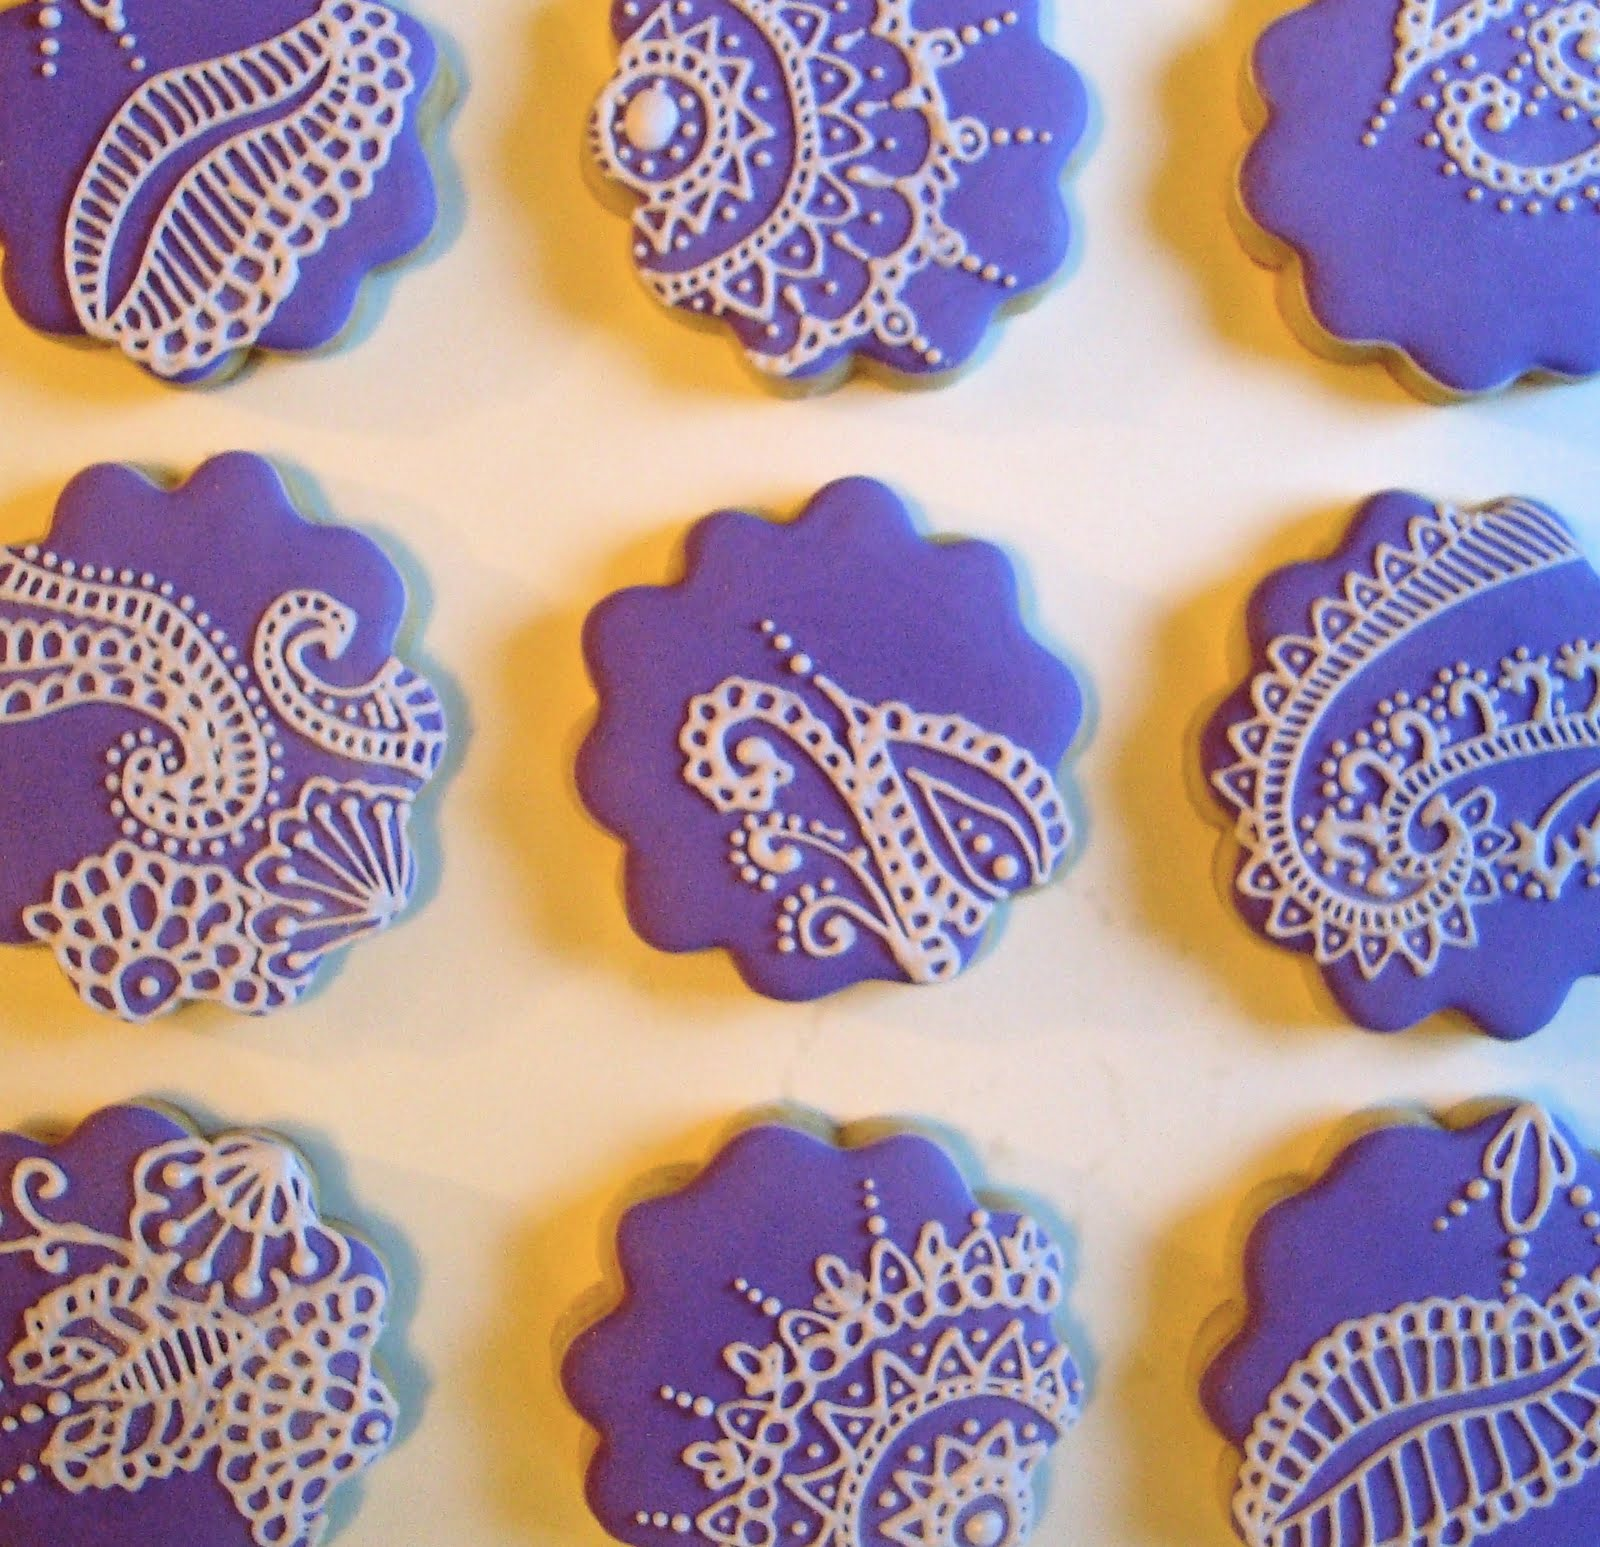 Cute Henna Wallpapers Sonal J Shah Event Consultants Llc Henna Inspired